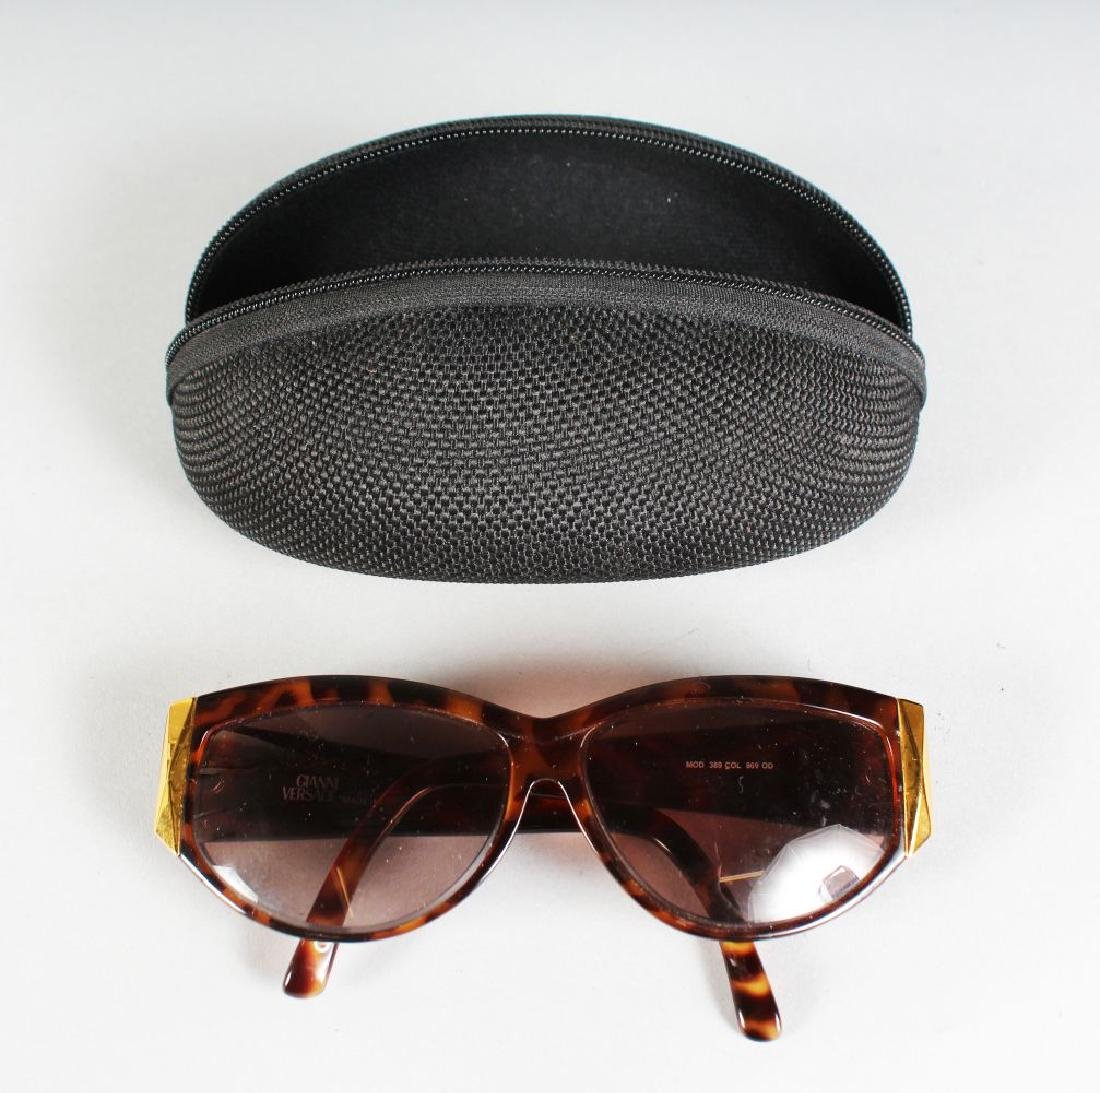 A PAIR OF PERCY SUNGLASSES, in a folding case.